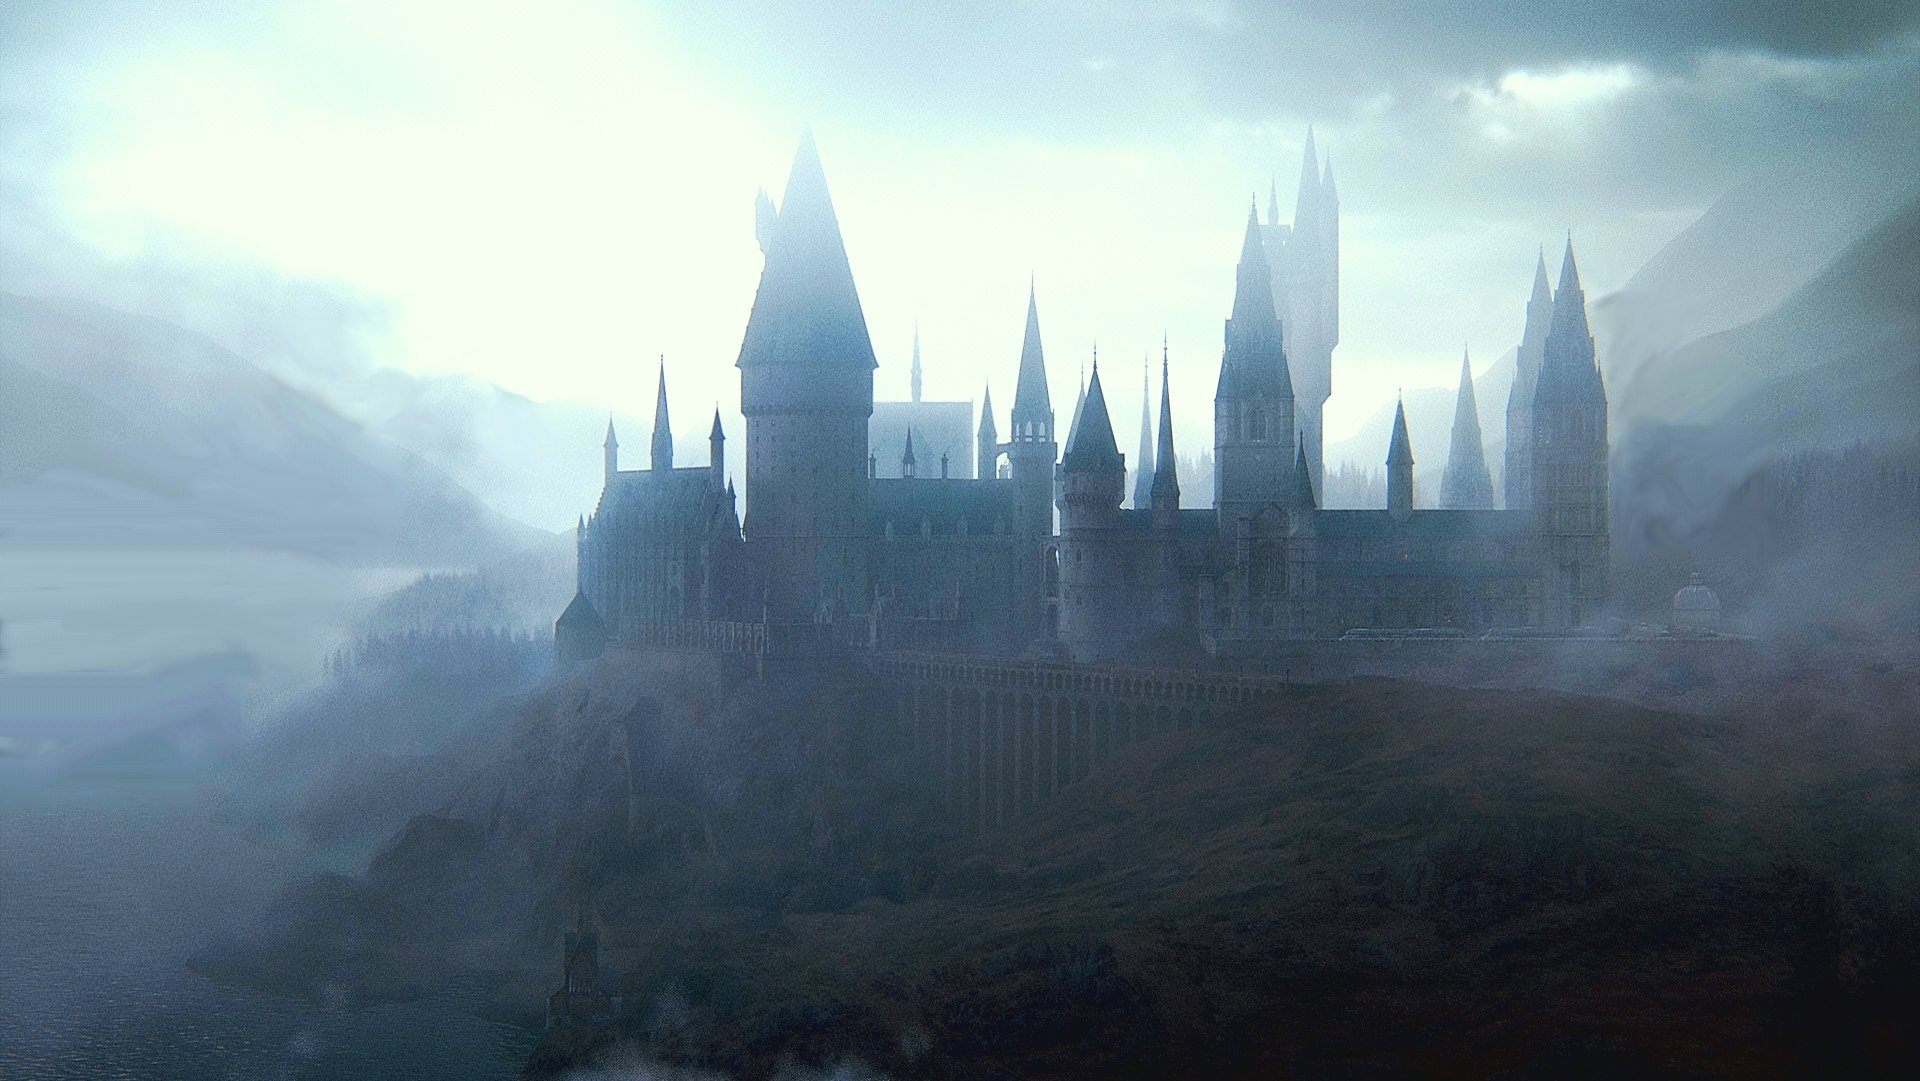 Free Download Hogwarts Castle Backgrounds